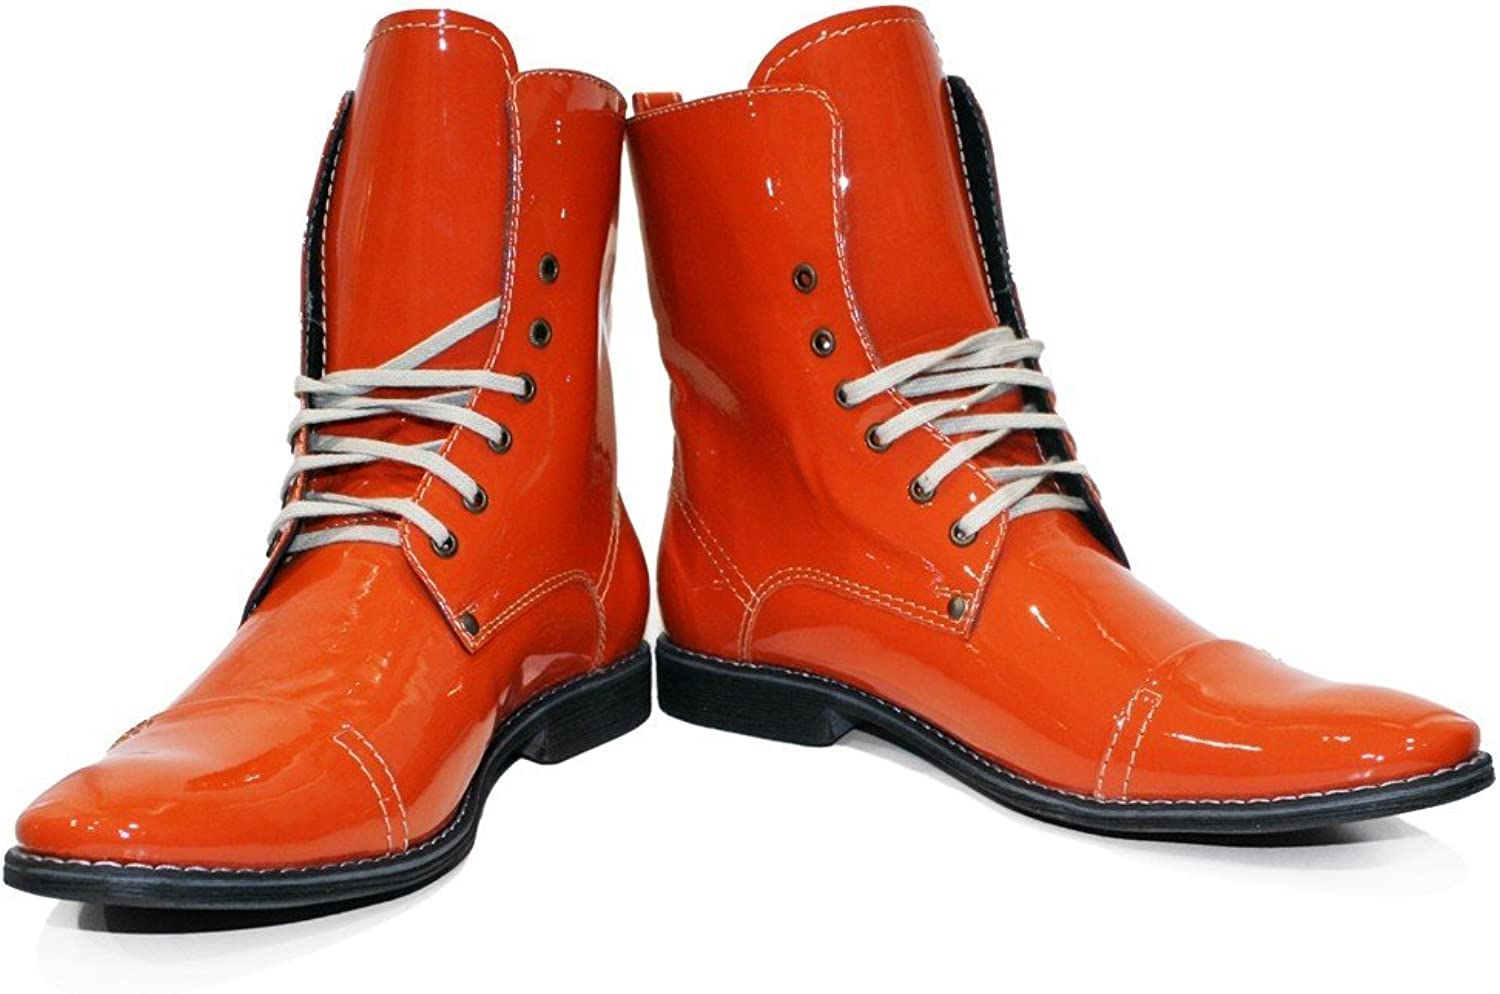 Peppeshoes Modello Siciliano - Handmade Italian Leather Mens color orange High Boots - Cowhide Smooth Leather - Lace-Up